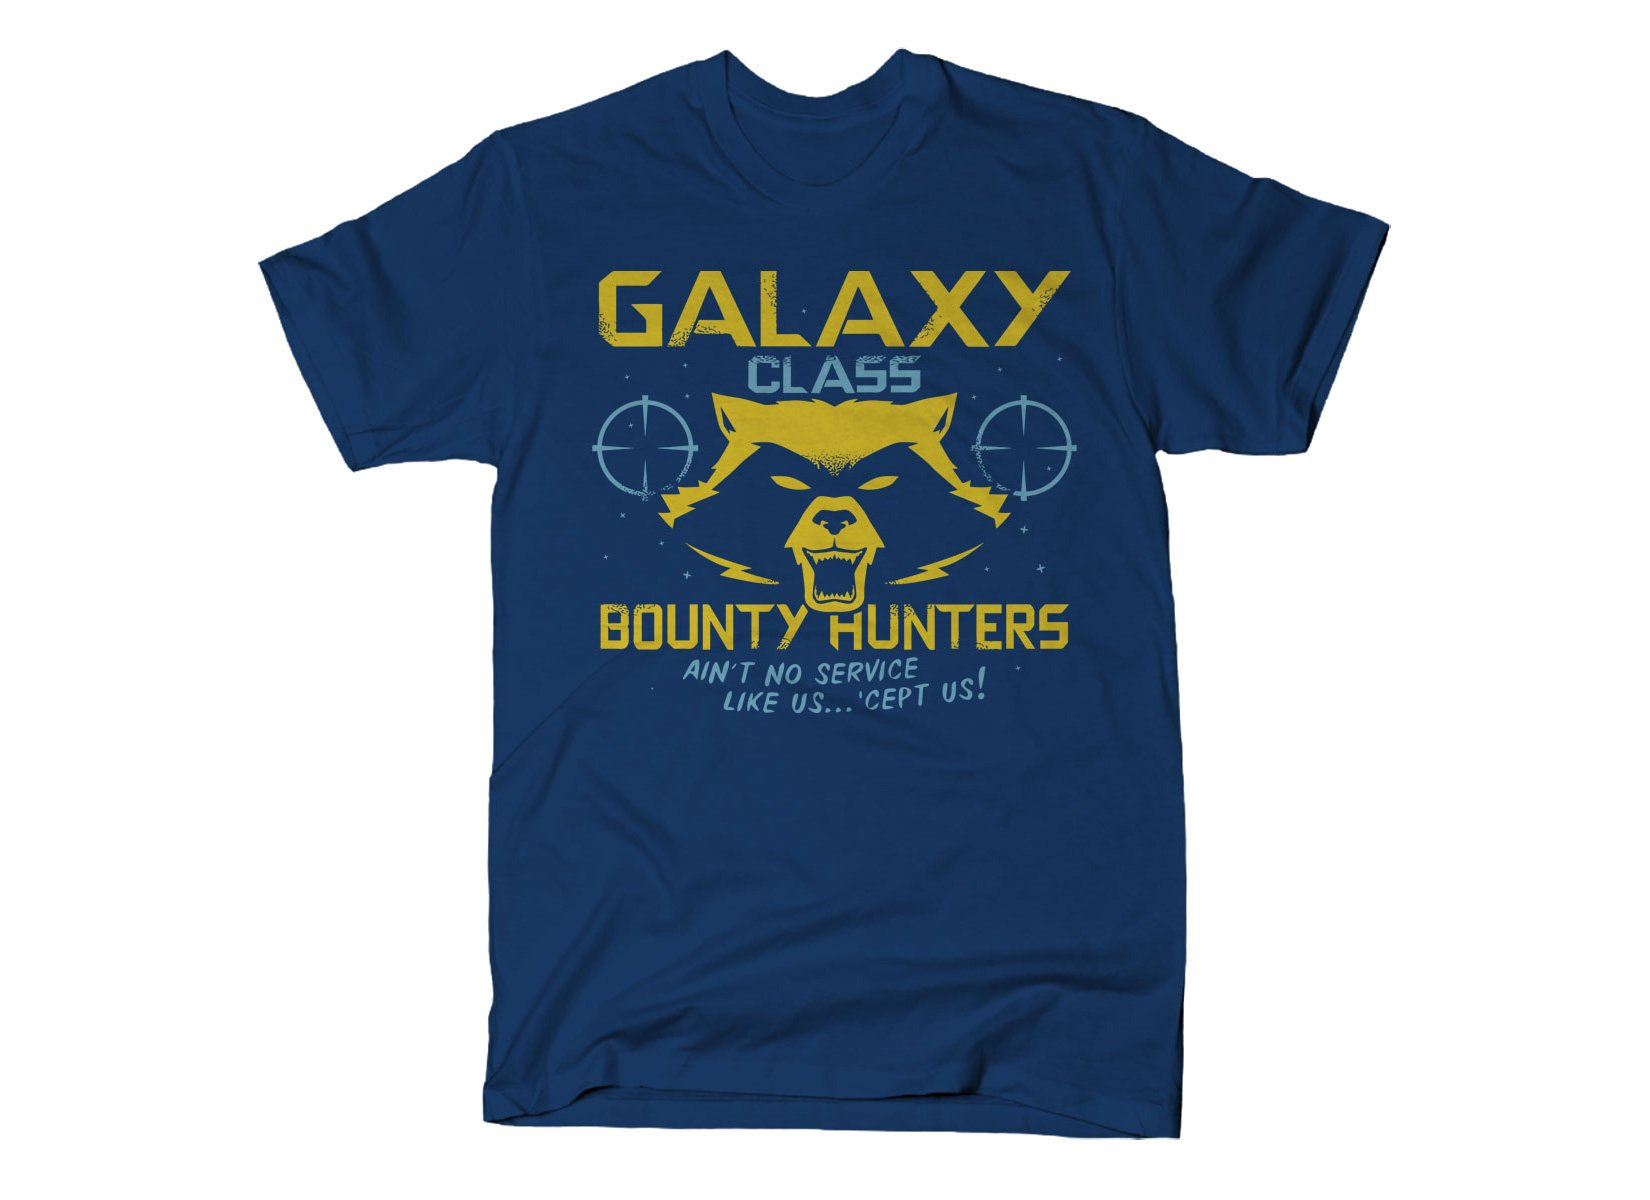 Galaxy Class Bounty Hunters on Mens T-Shirt